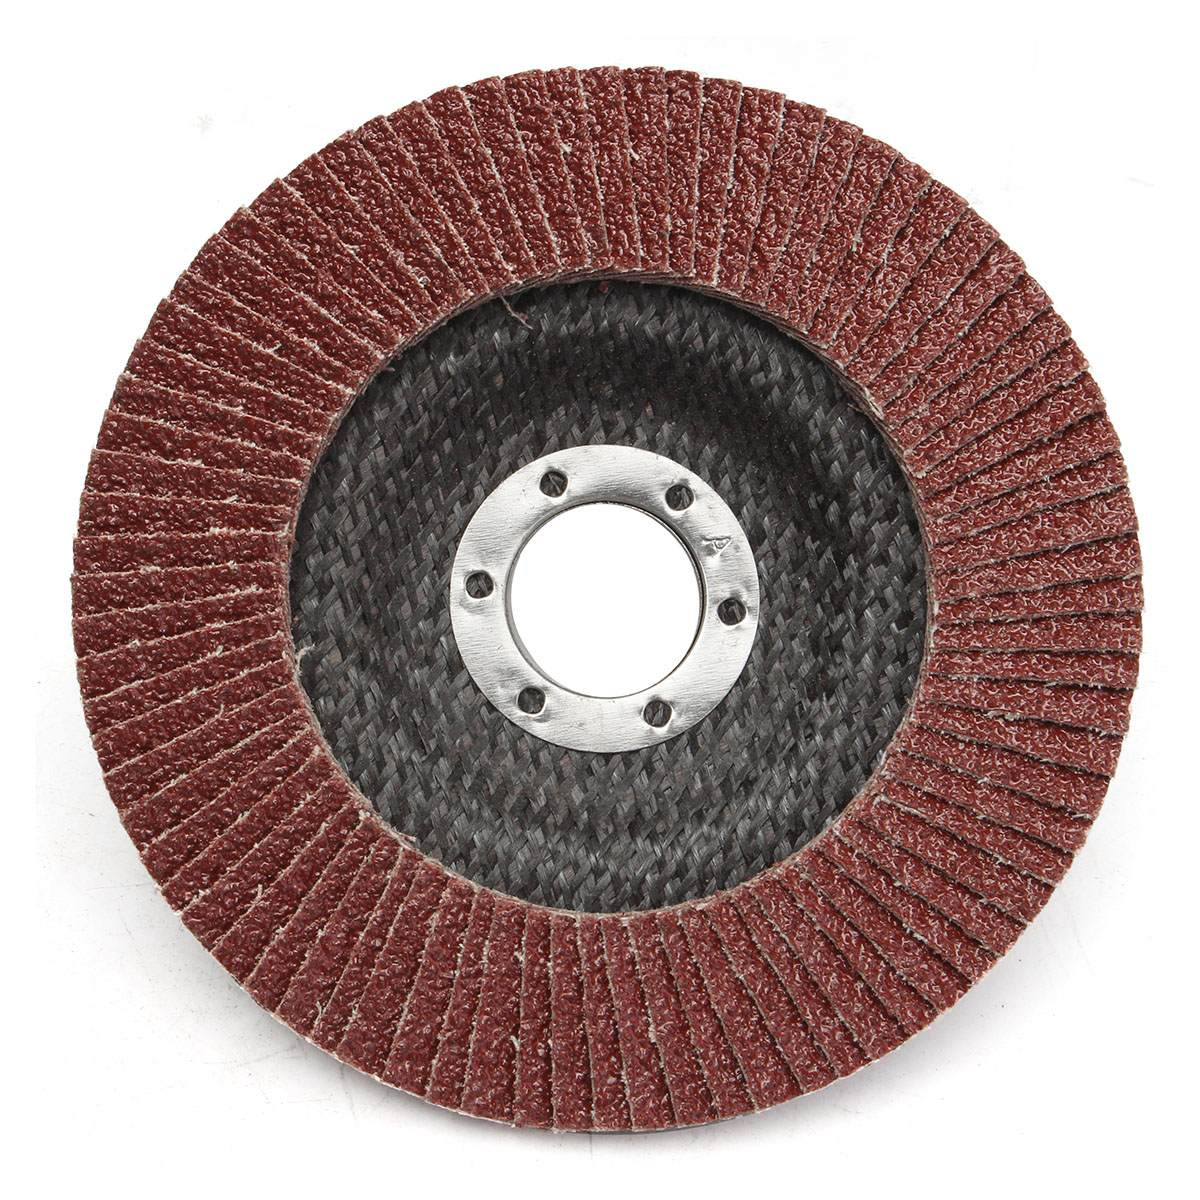 DOERSUPP Grit Flap Disc  125mm 5 Inch 40/60/80/120 Grit Sanding Discs 13000 Rpm Powerful Grinding Wheel Blades For Angle Grinder